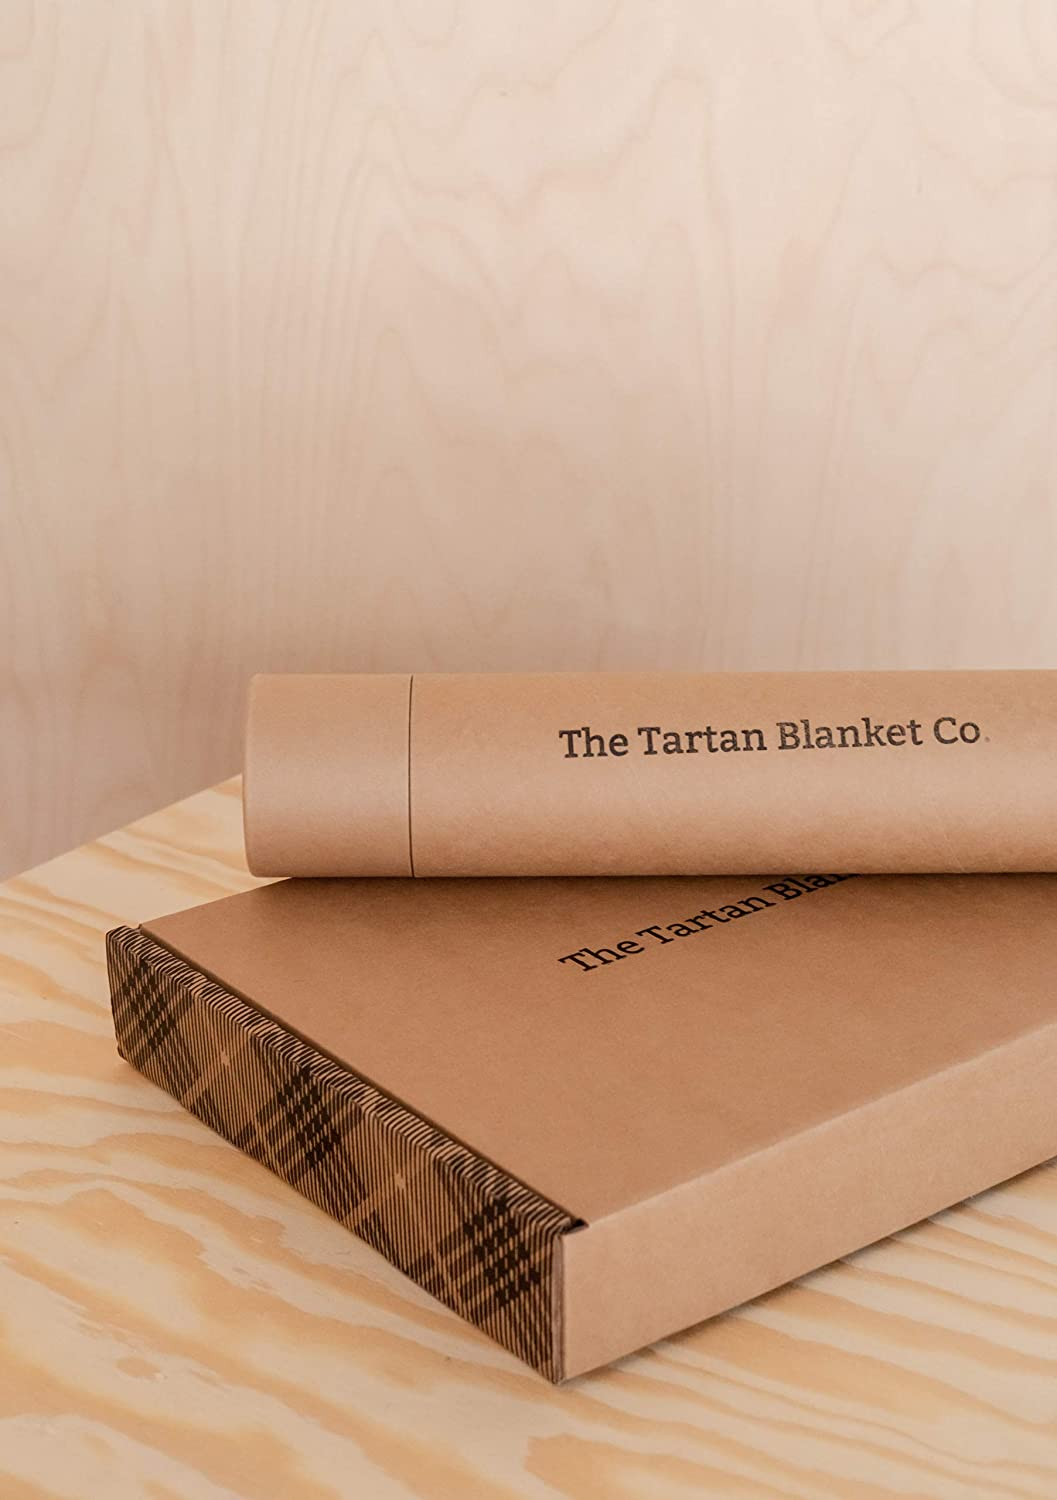 The Tartan Blanket Co. Couverture de Genou en Laine recyclée – Style Tartan écossais Dark Maple Persevere Flint Grey